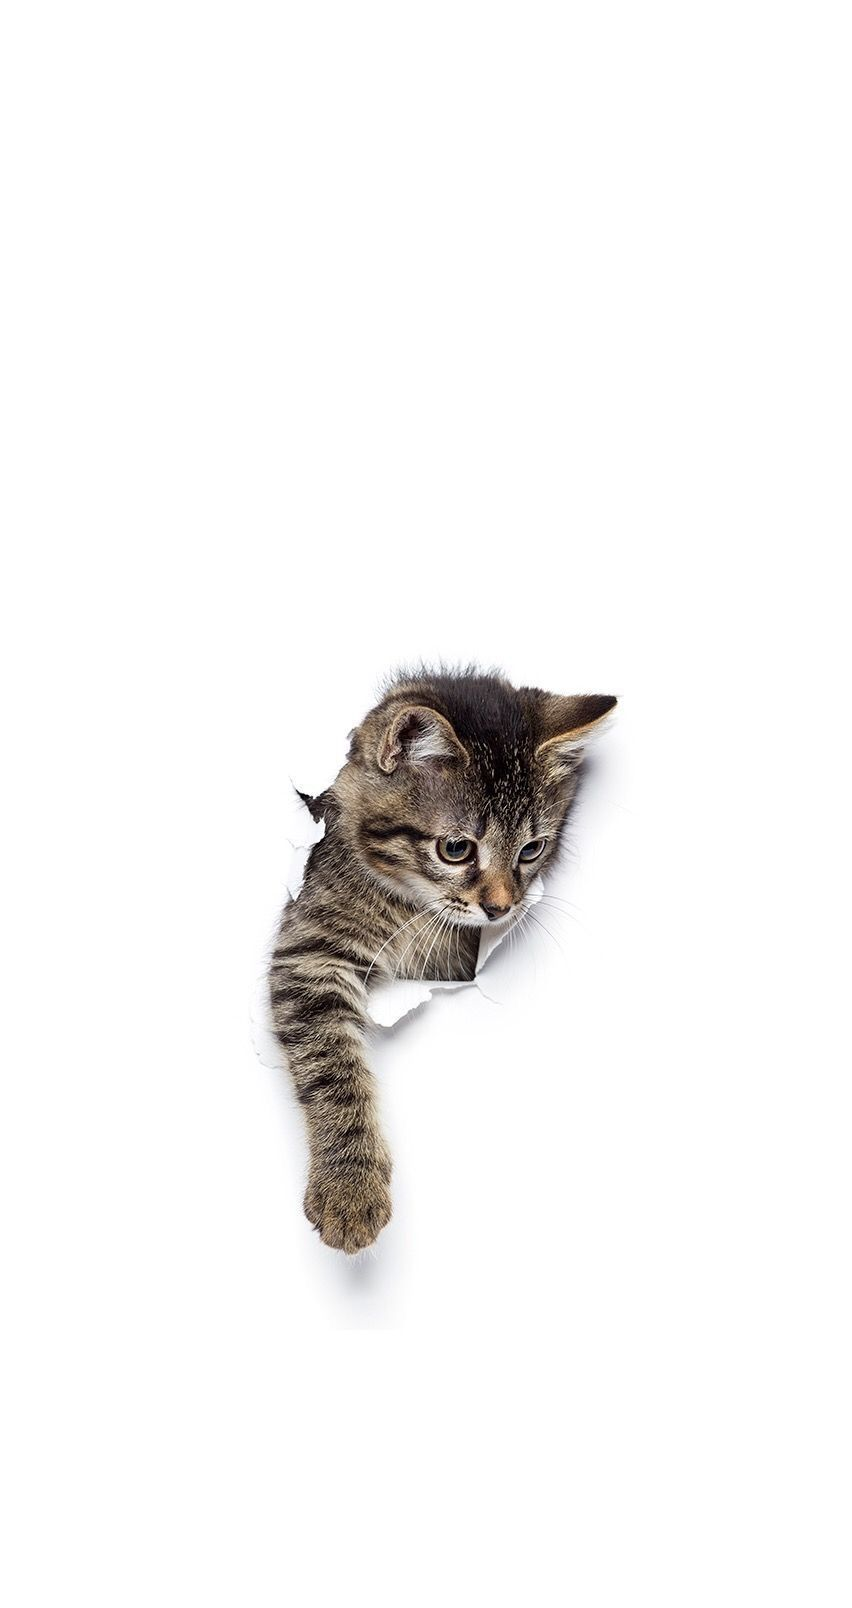 Untitled Iphone Wallpaper Cat Cute Cat Wallpaper Cute Cats